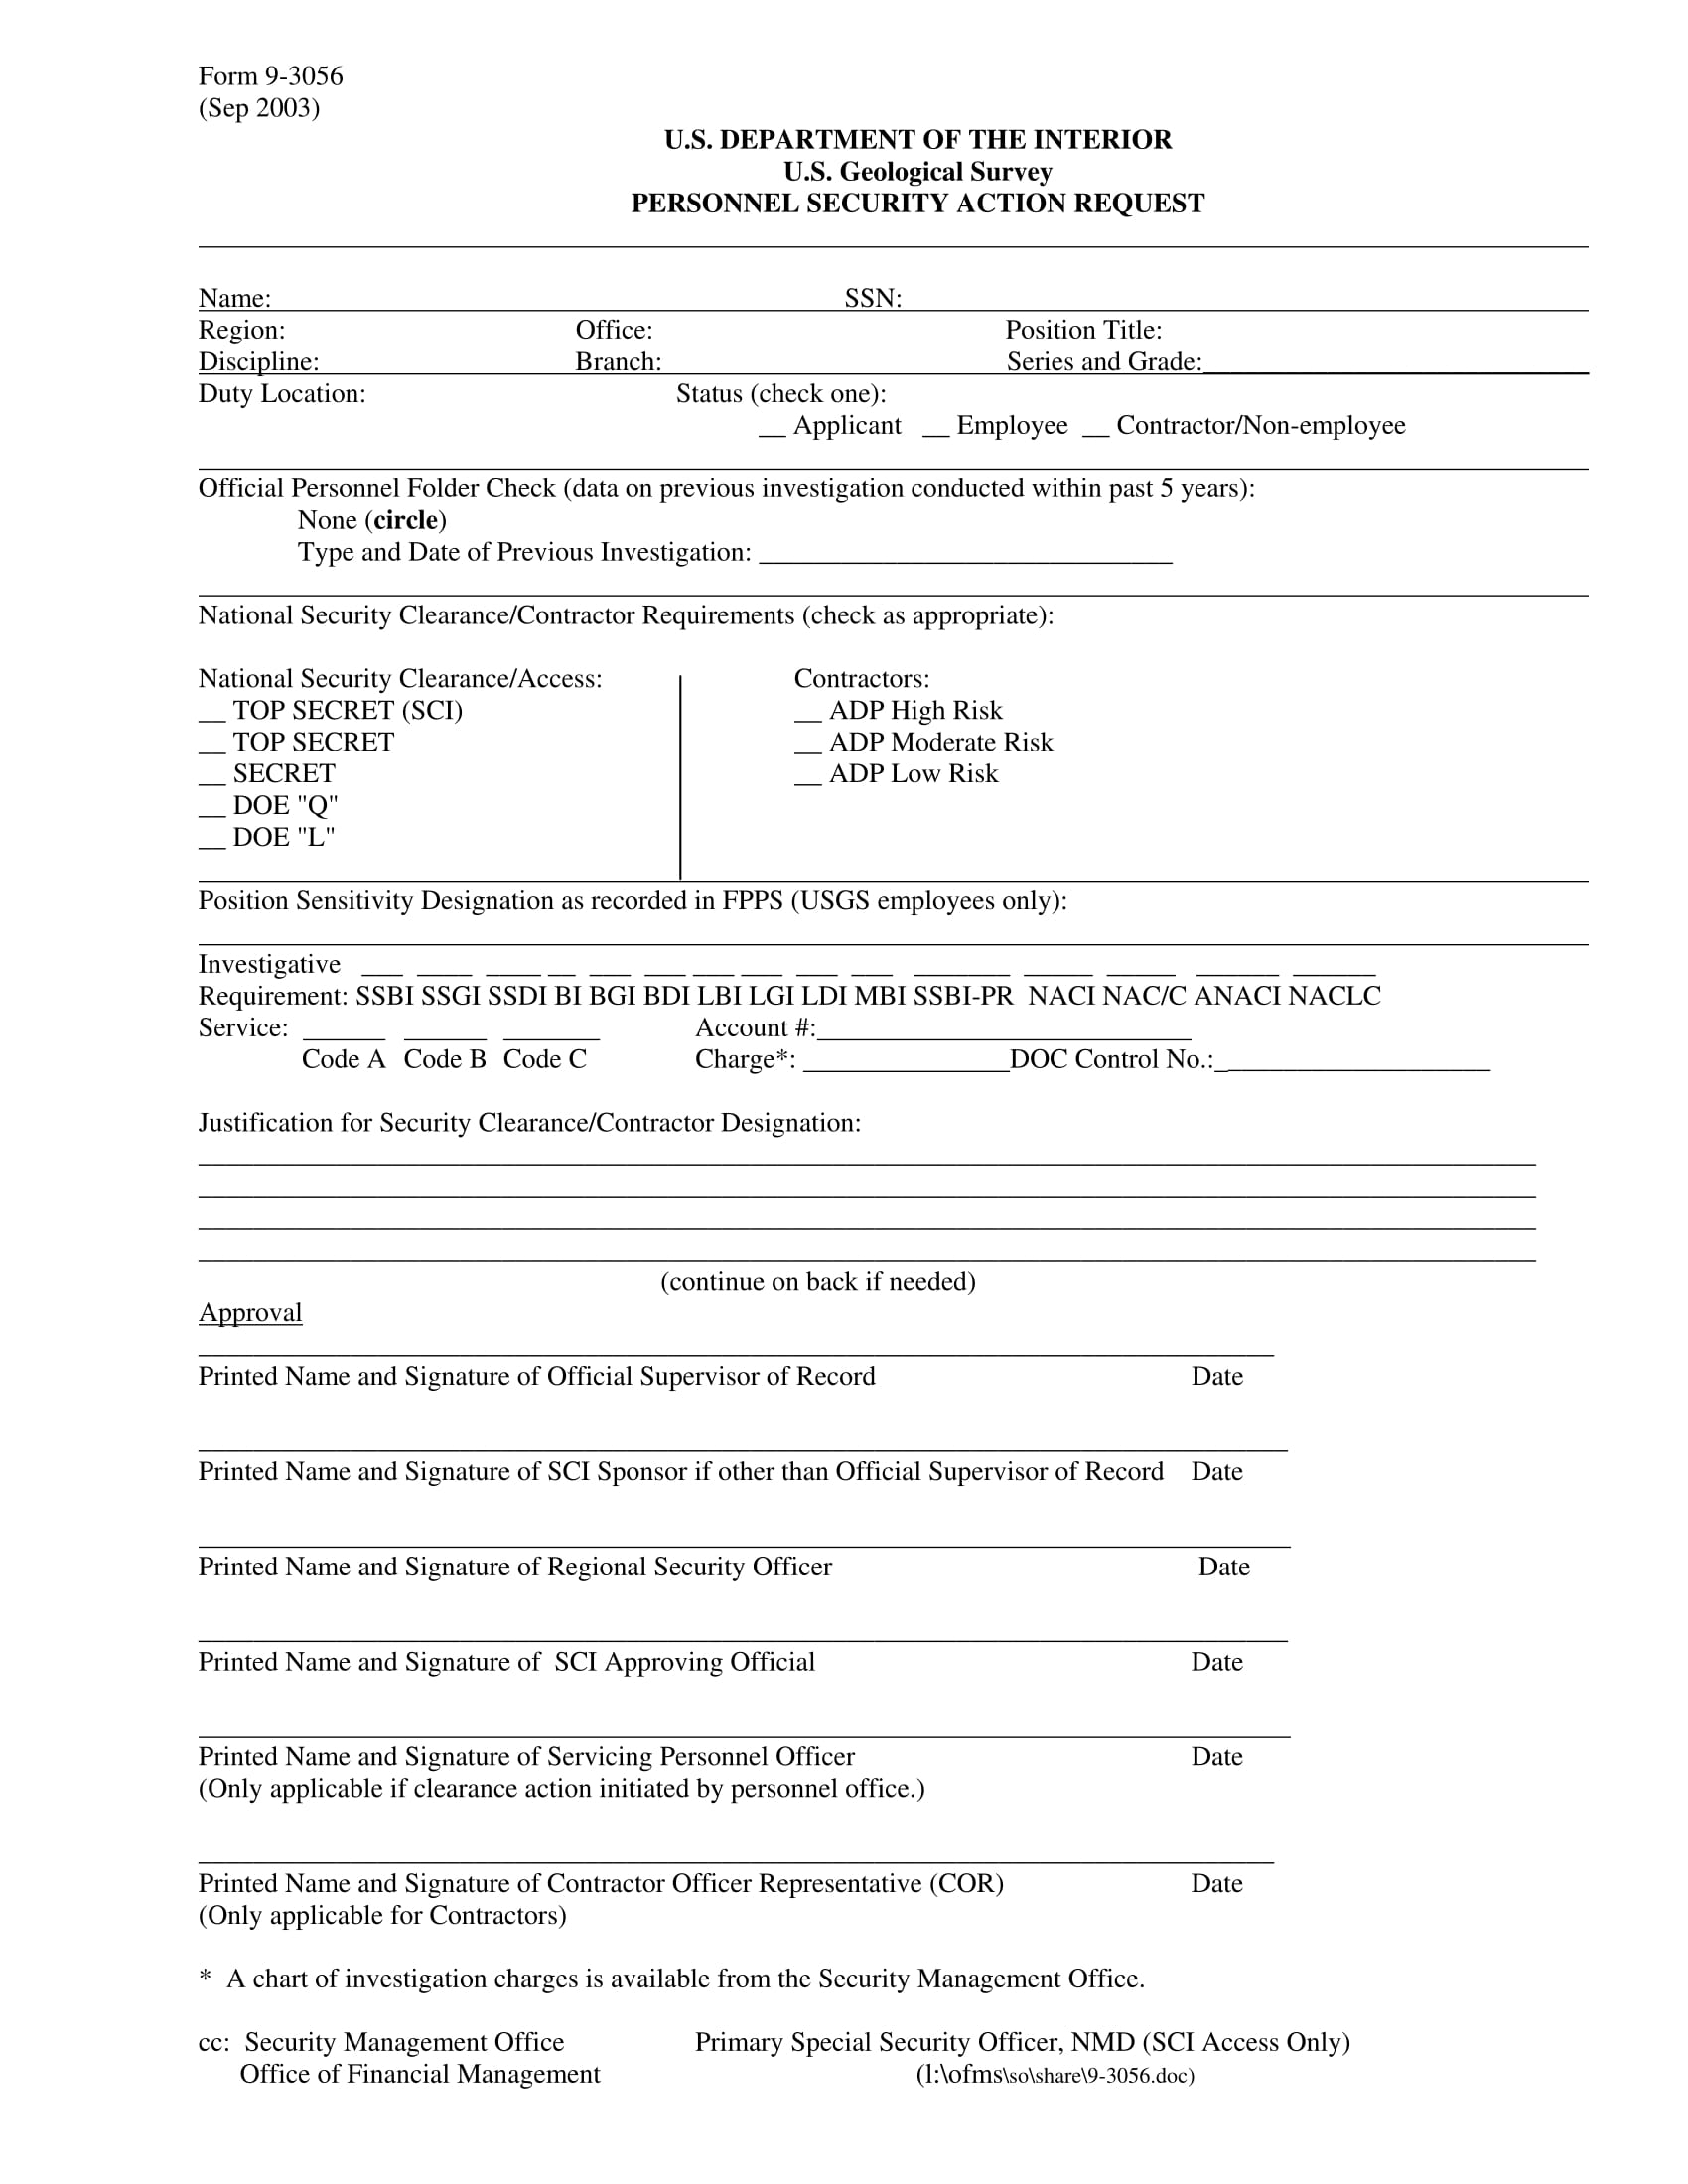 personnel security action request form